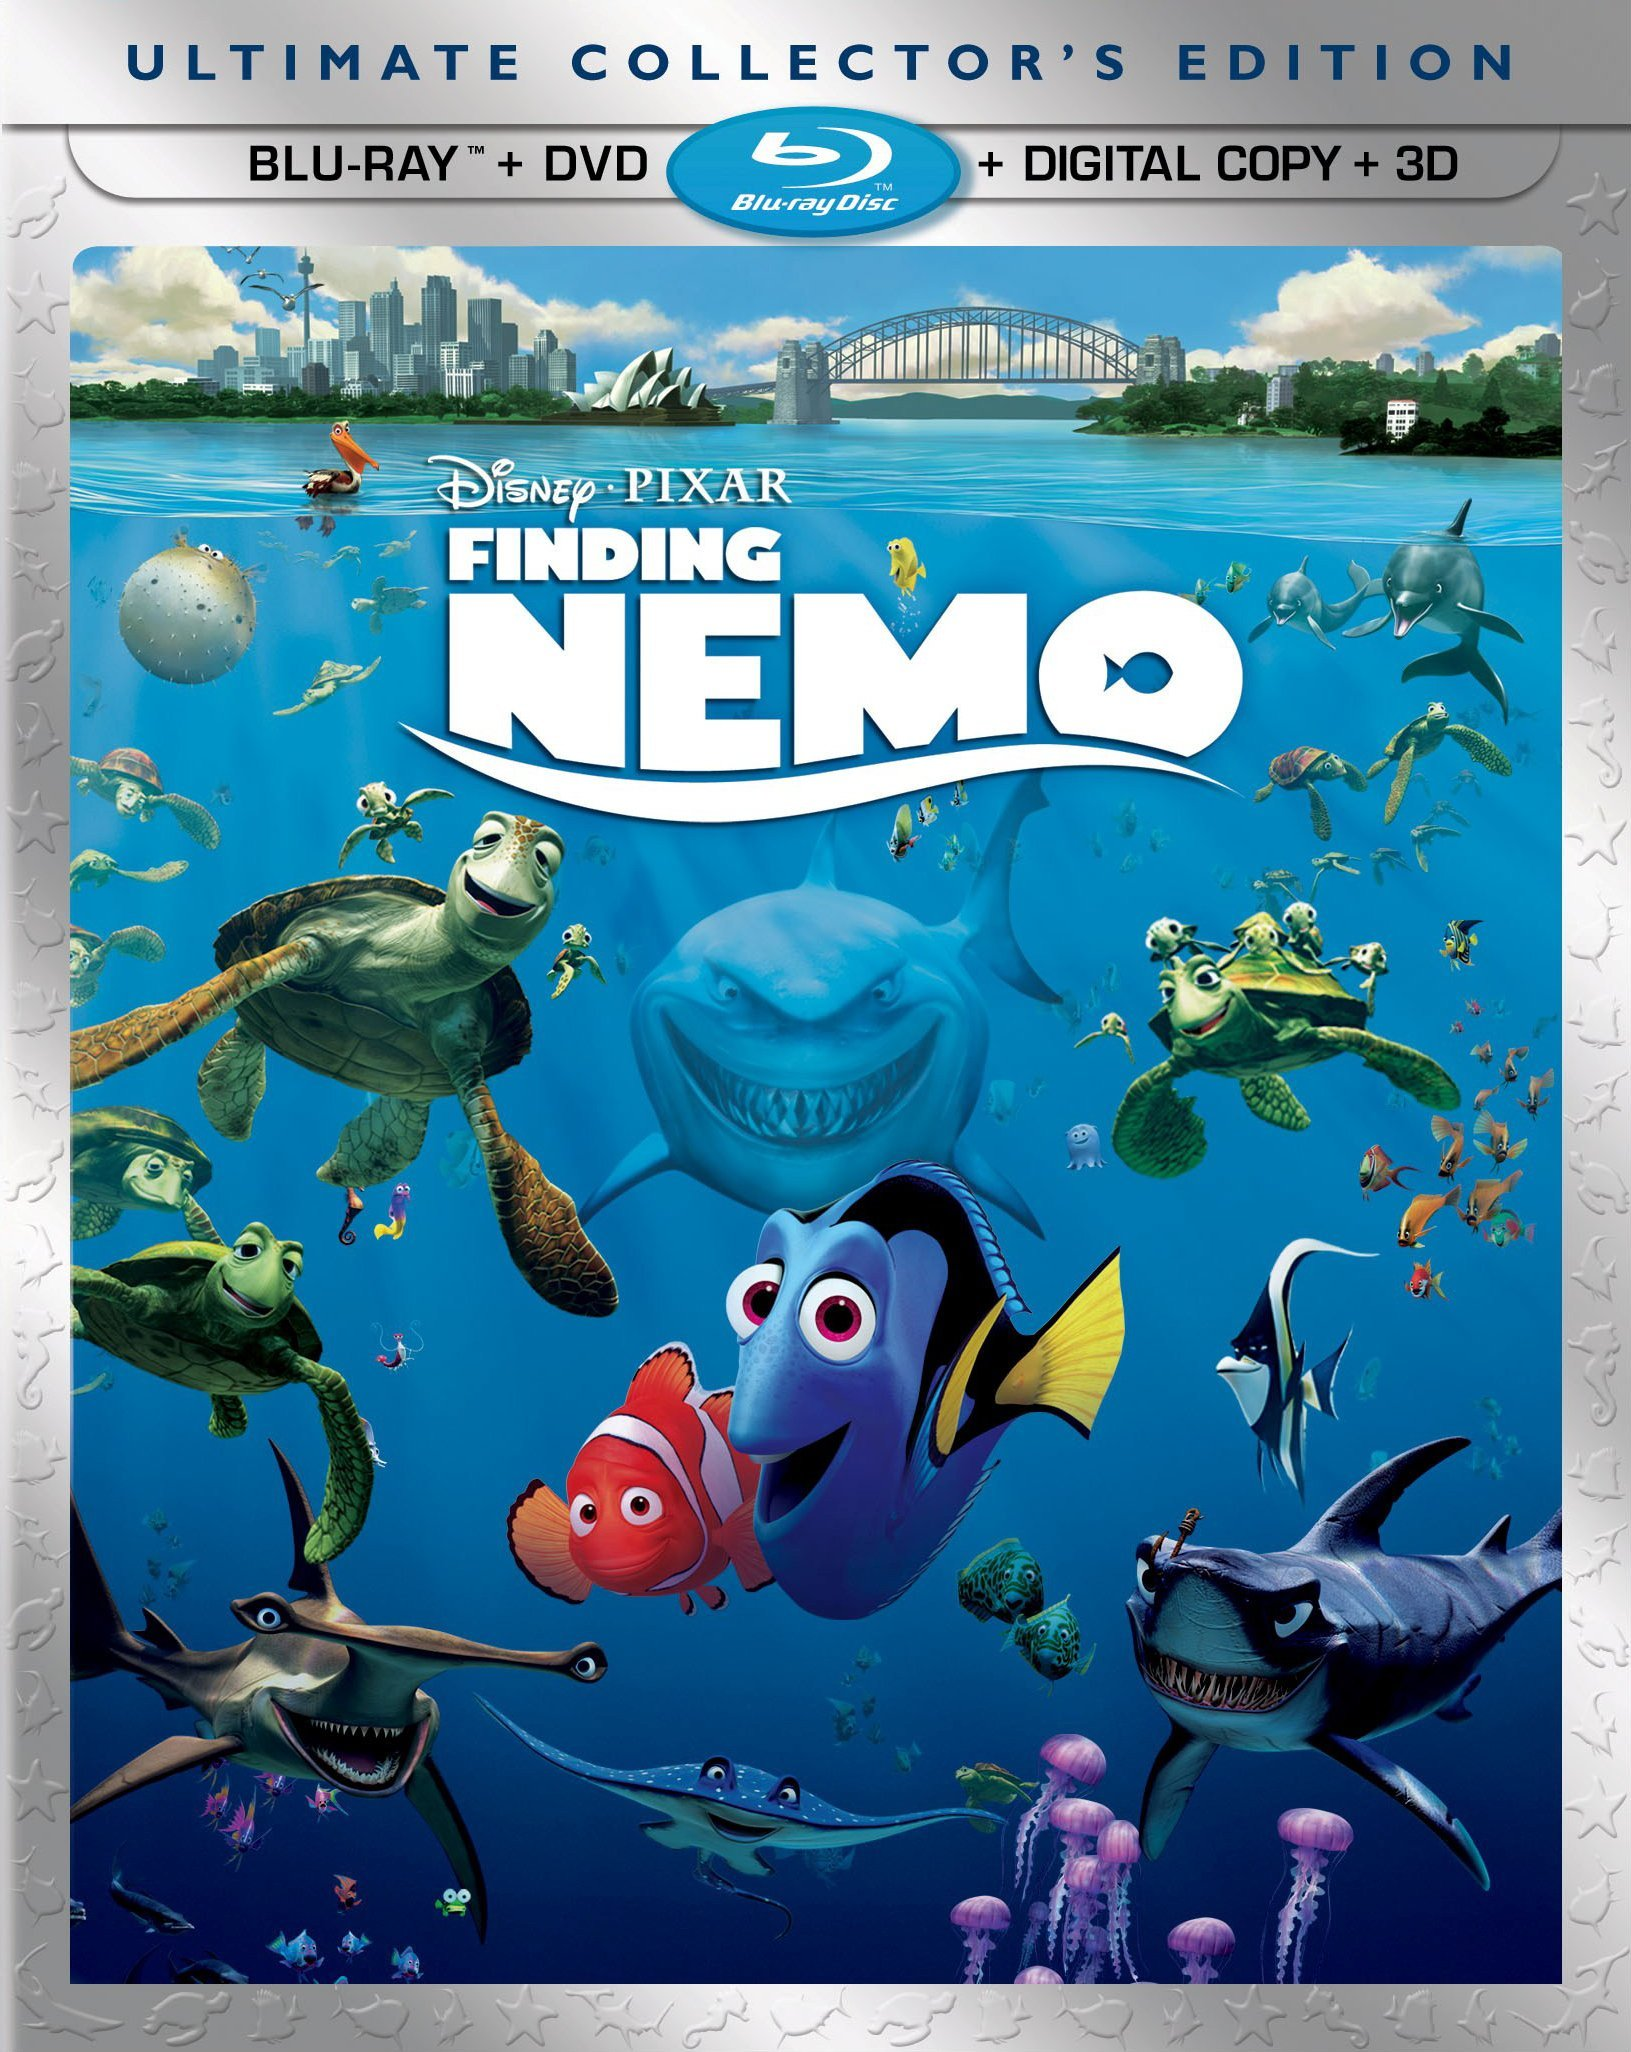 Preview: 'Finding Nemo' Blu-ray Special Features